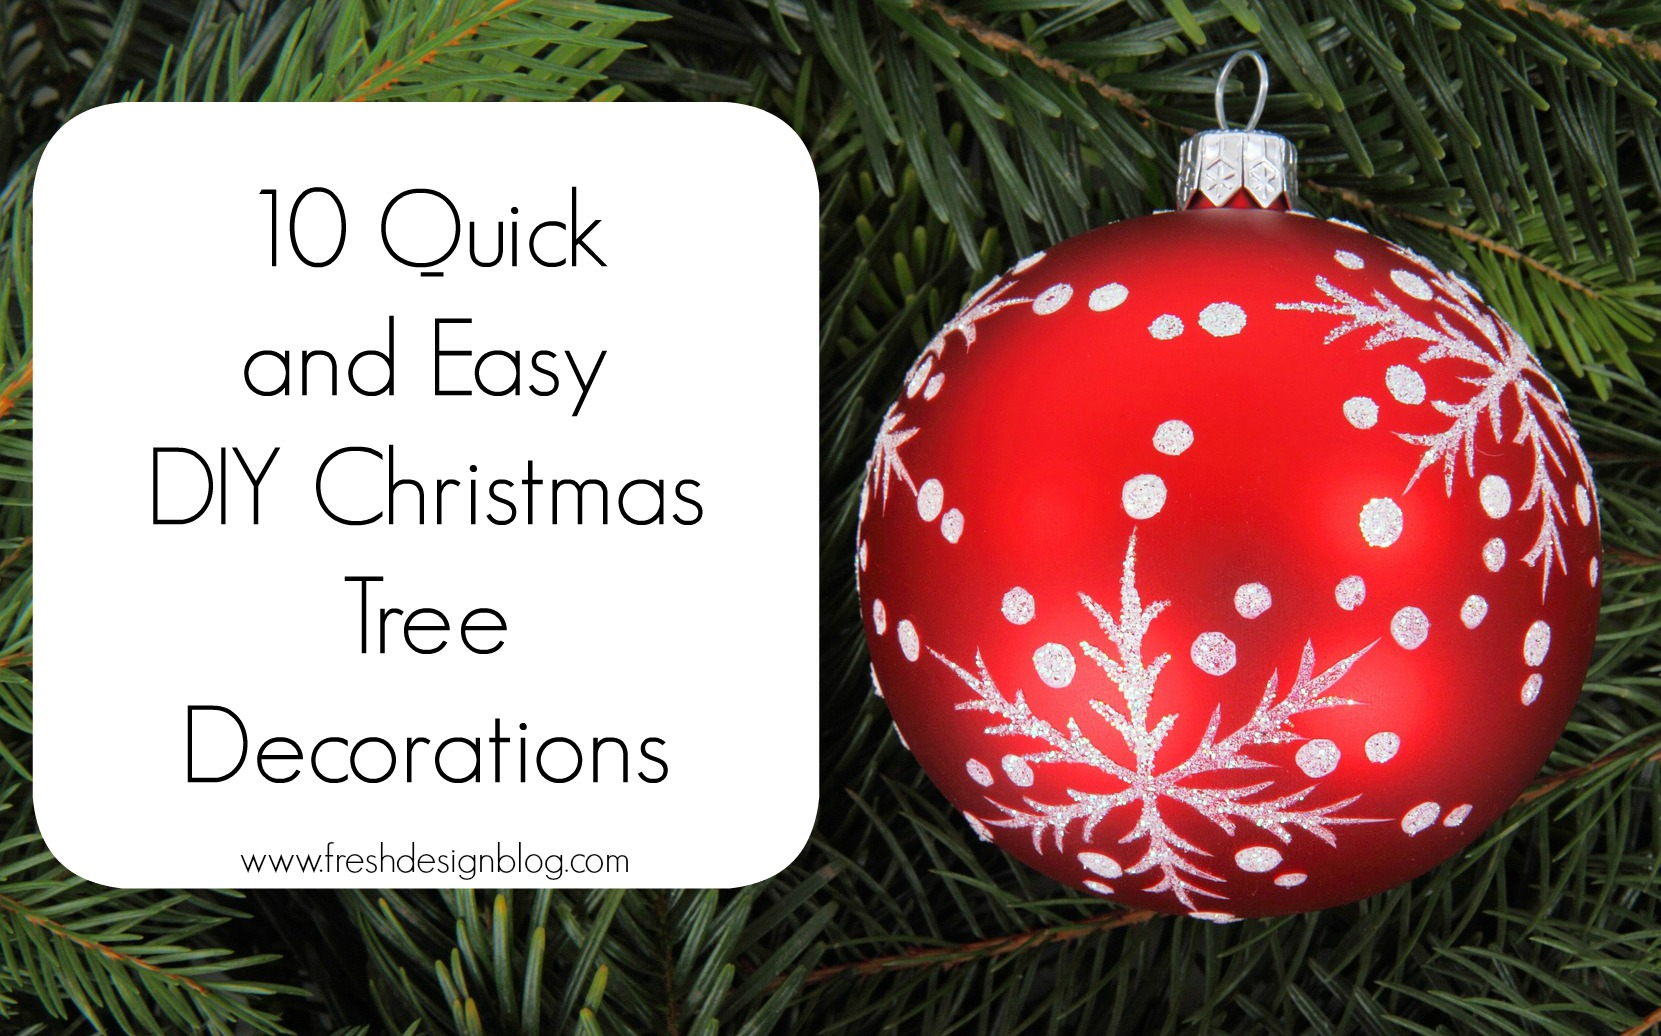 Easy christmas decorations to make at home 10 quick and for Paper christmas decorations to make at home